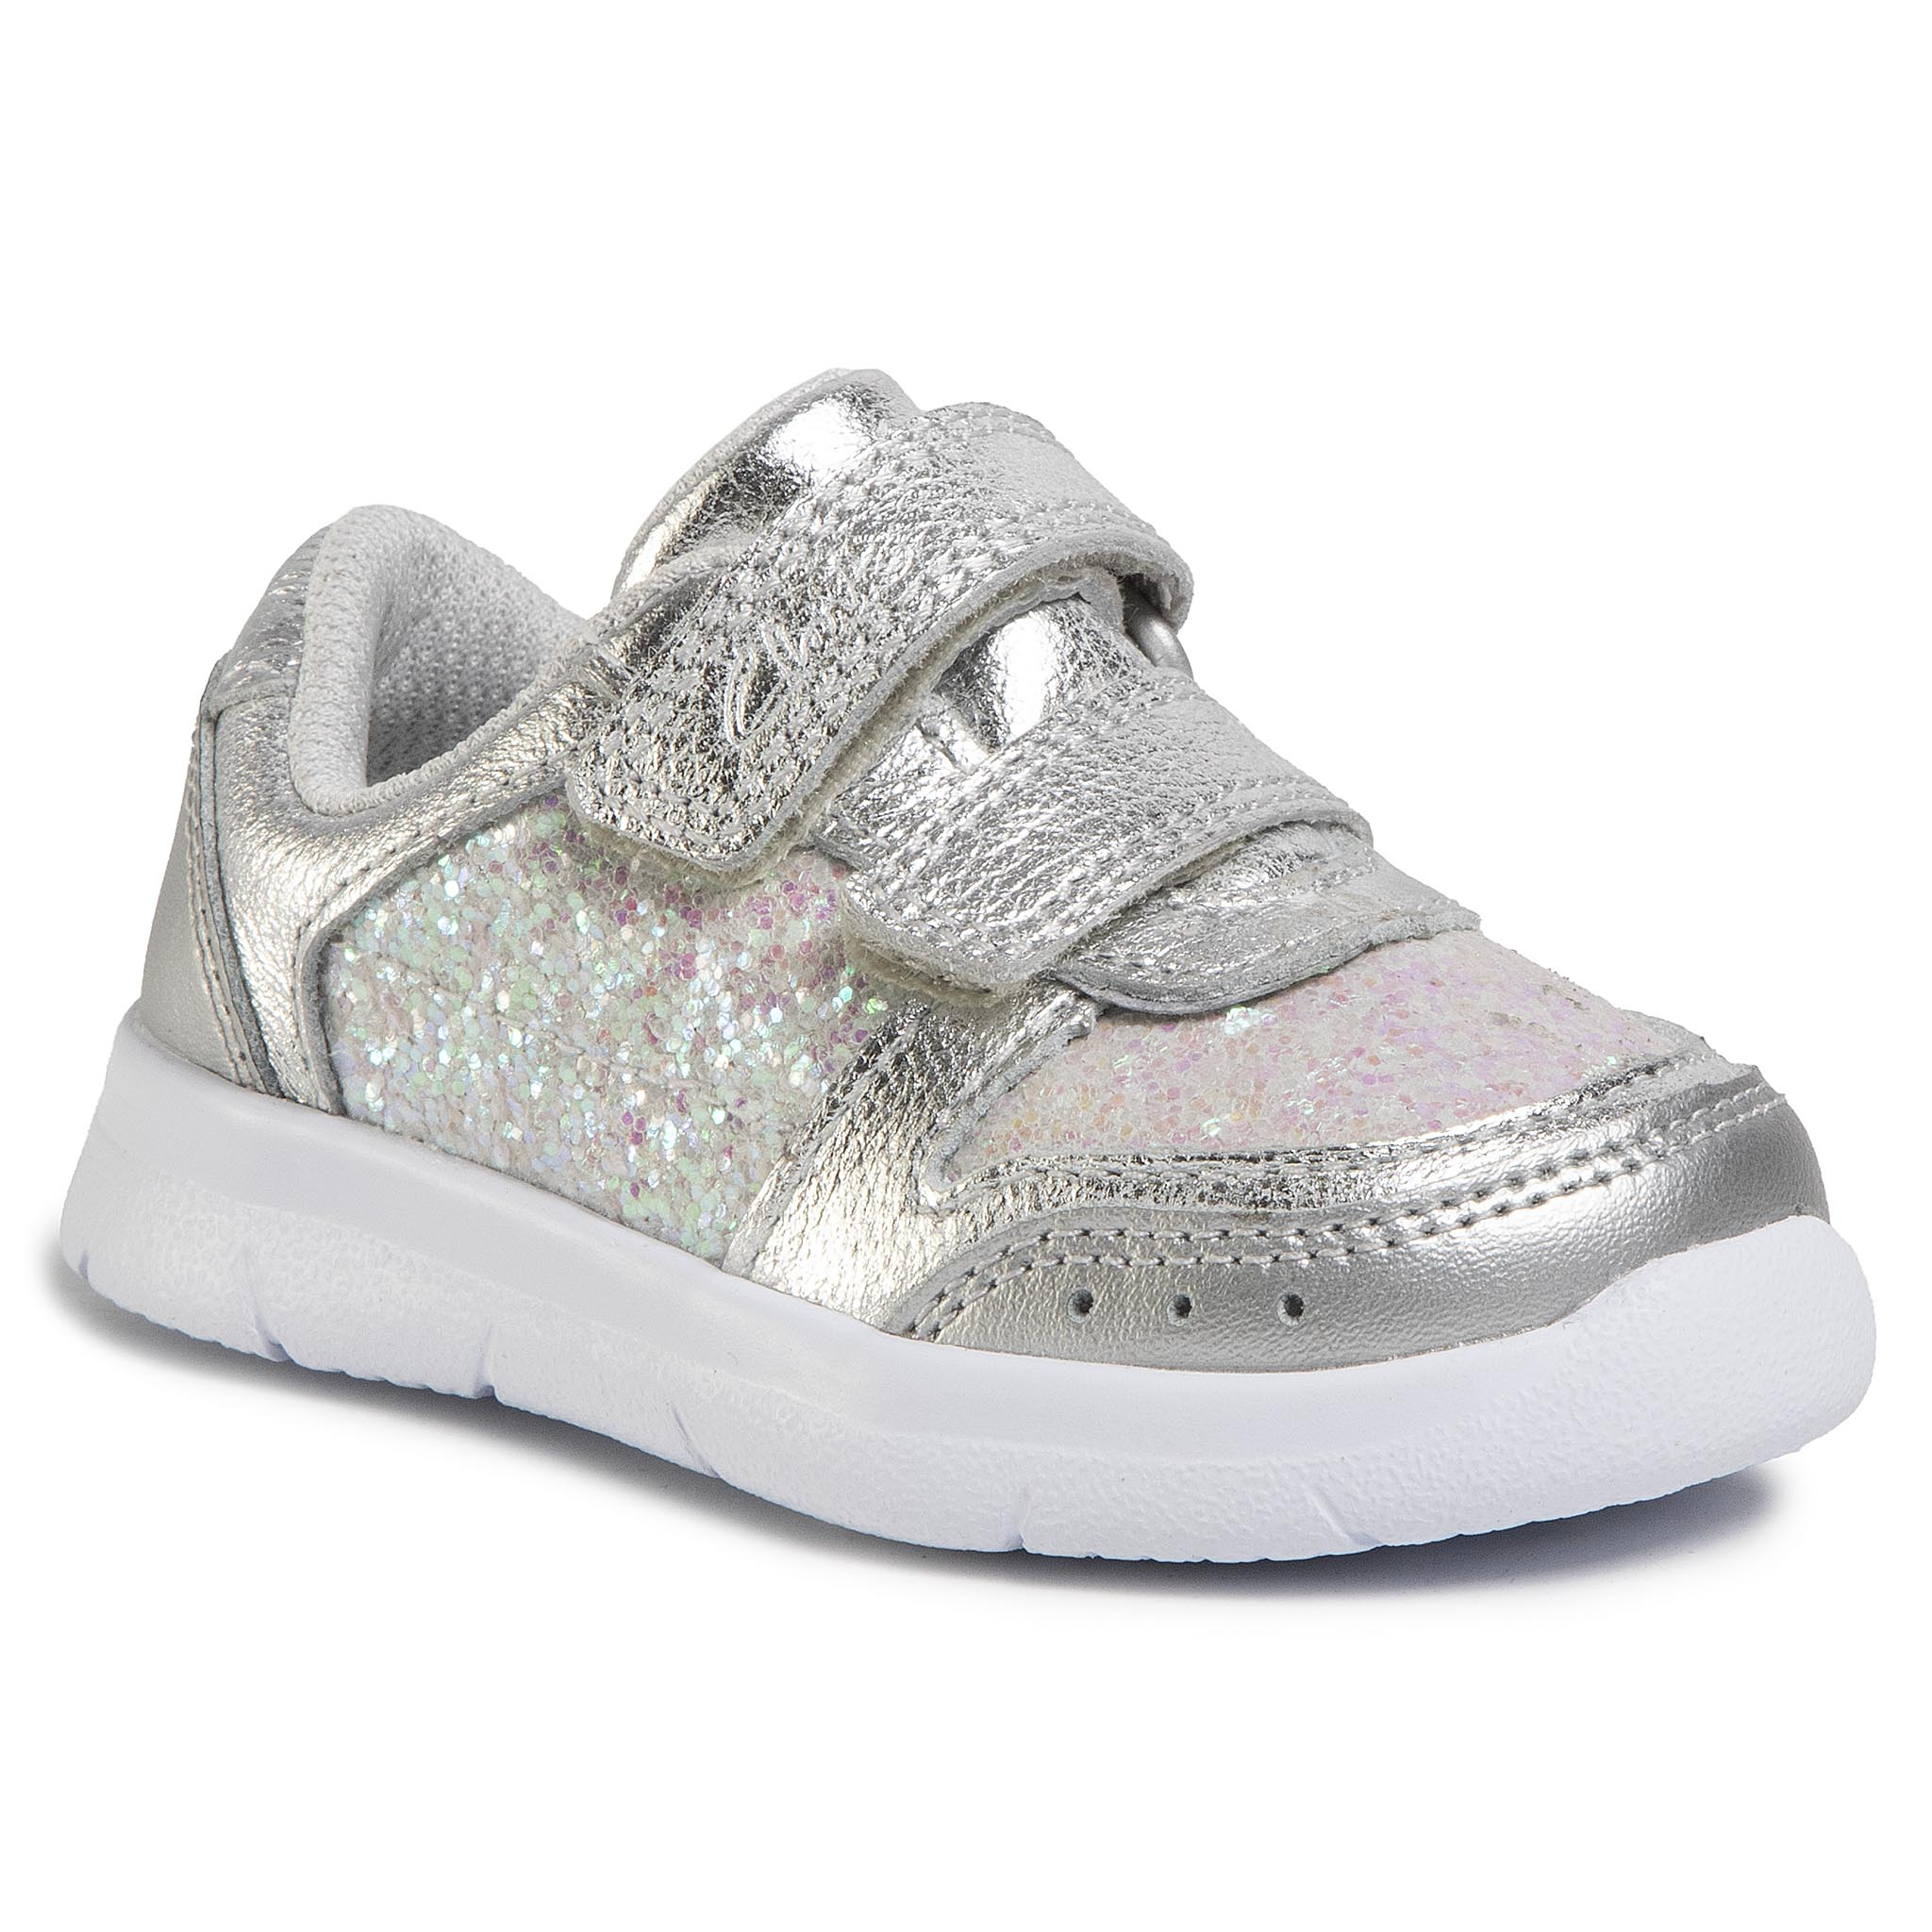 Sneakers CLARKS - Ath Sonar T 261496486 Silver Leather